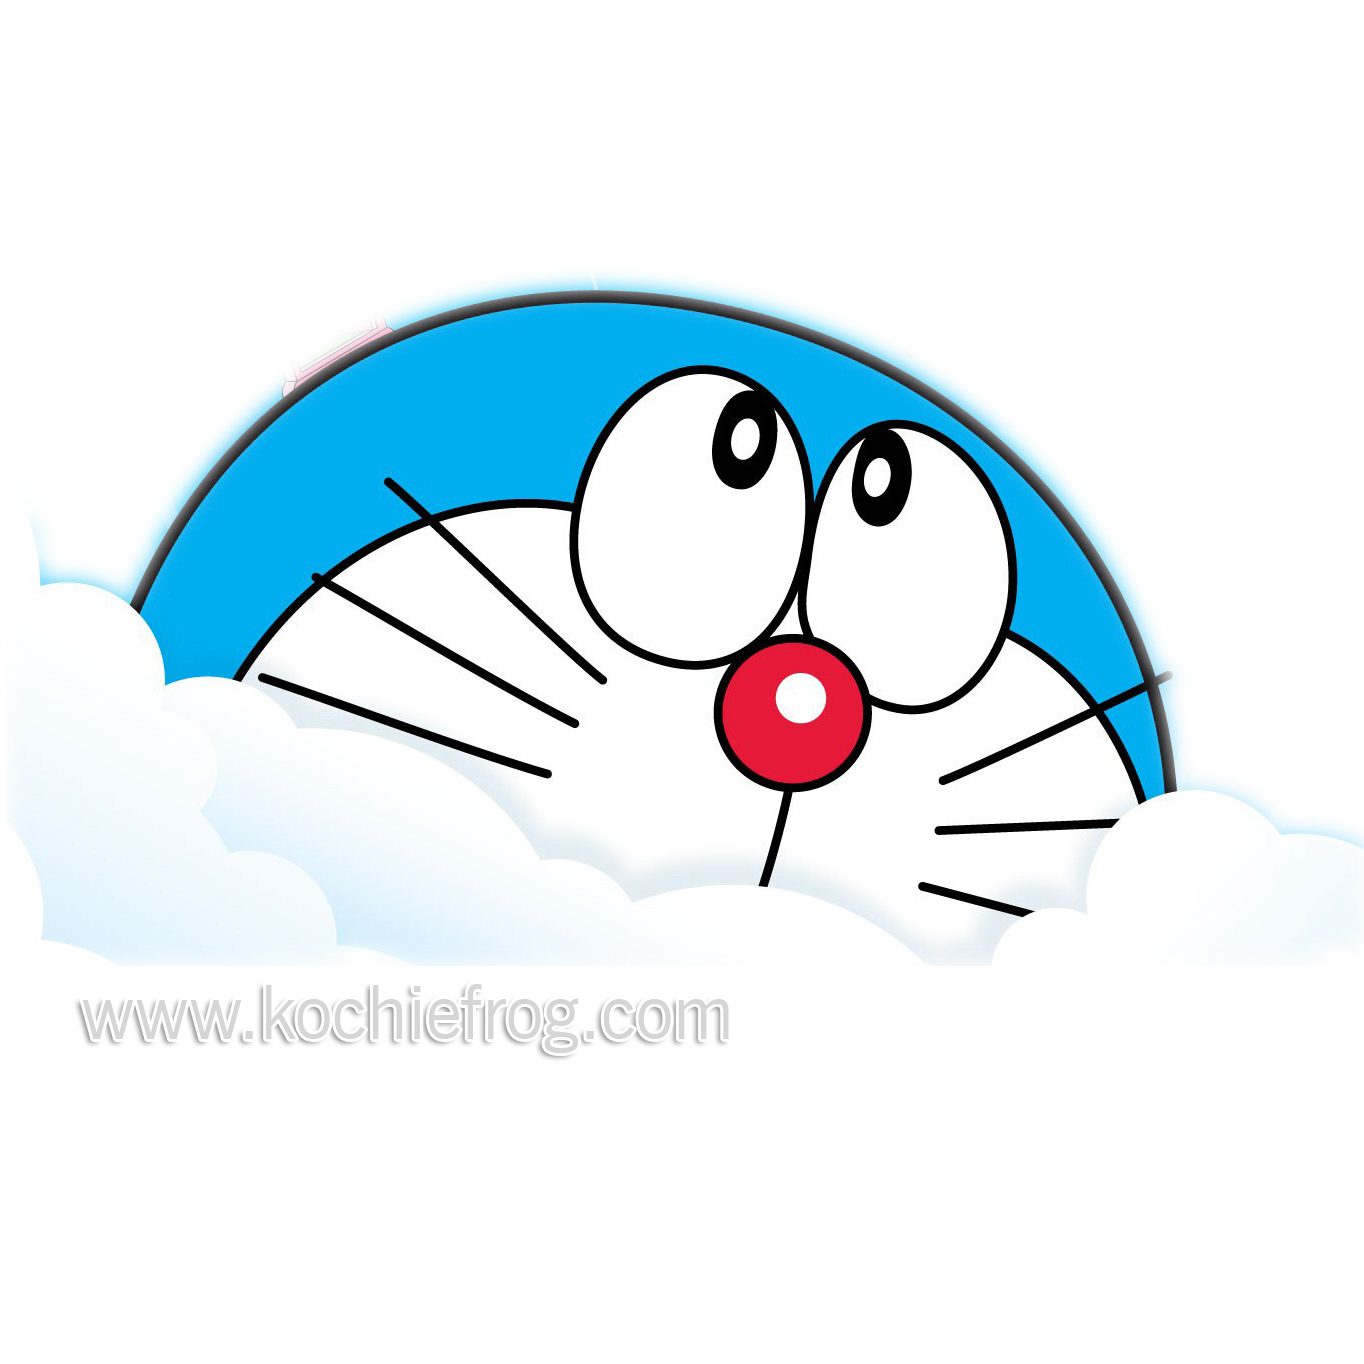 Wallpaper Doraemon Untuk Laptop - WallpaperSafari